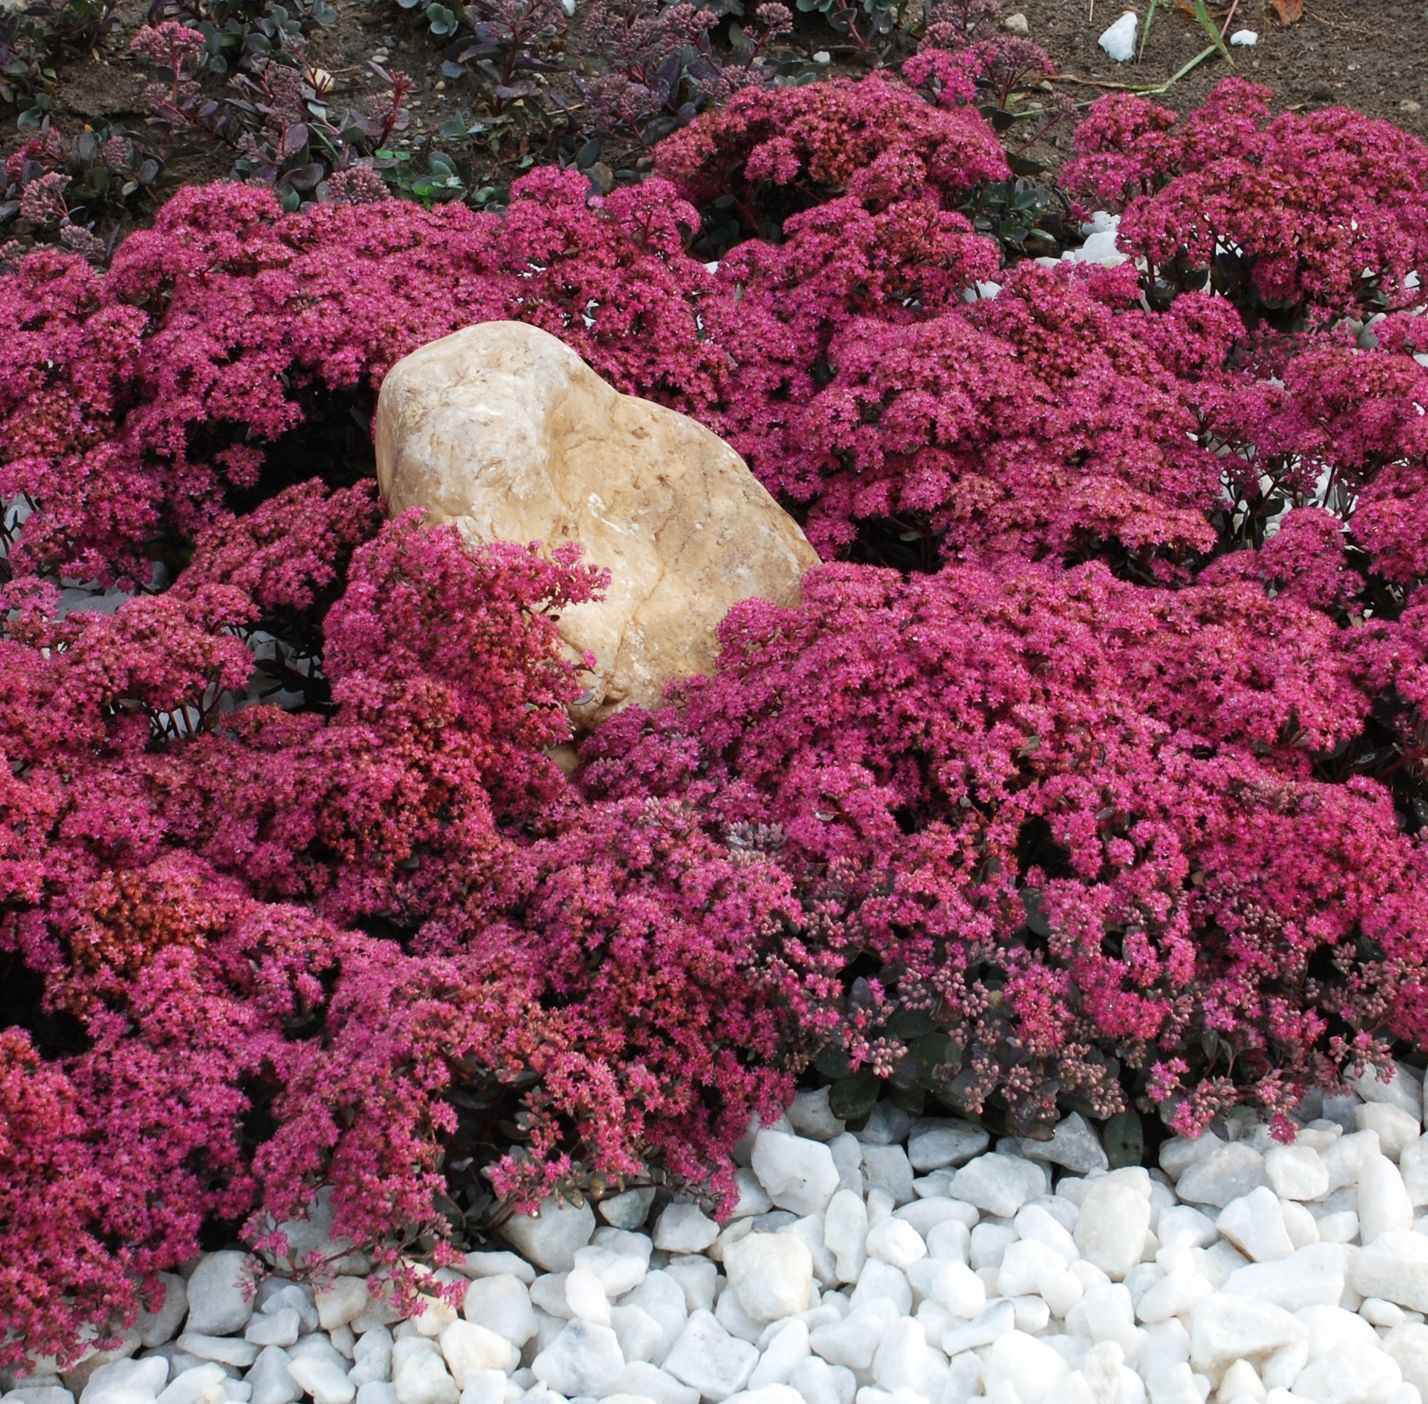 Sunsparkler dazzleberry sedum monrovia blooms earlier than